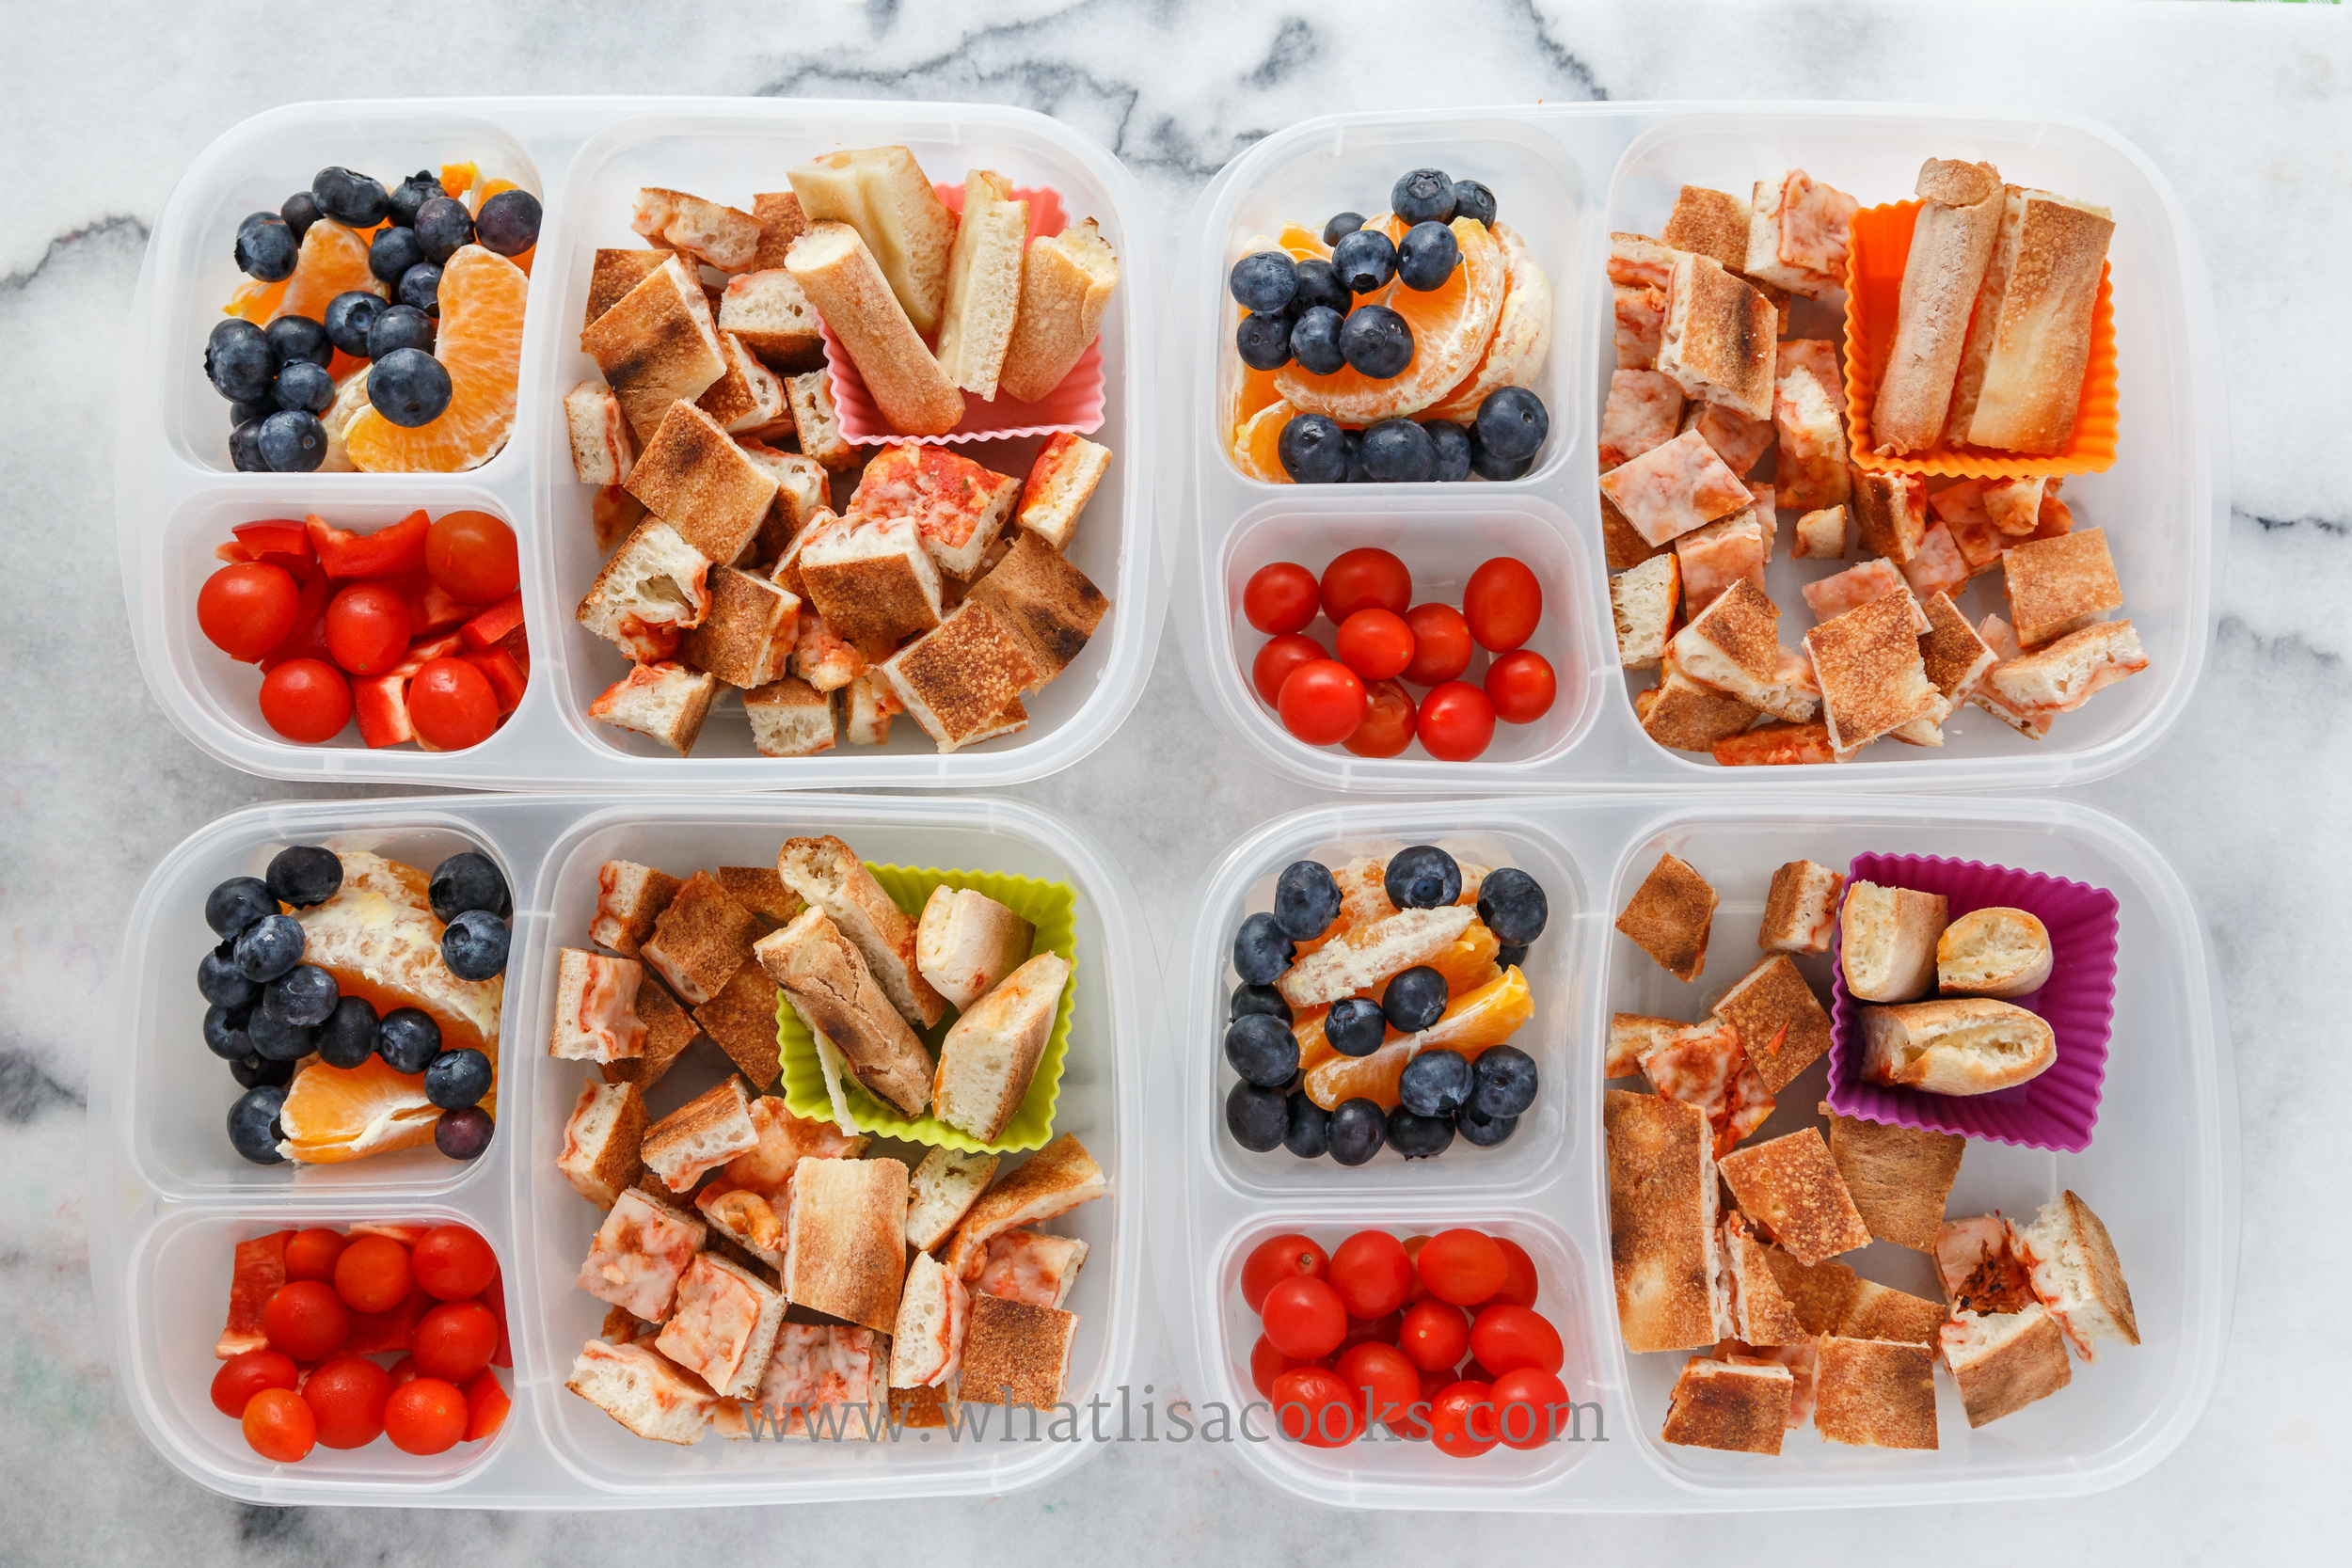 Leftover pizza cut in bites for easier and faster eating, with oranges, blueberries, and tomatoes.  Packed in  Easy Lunchboxes .